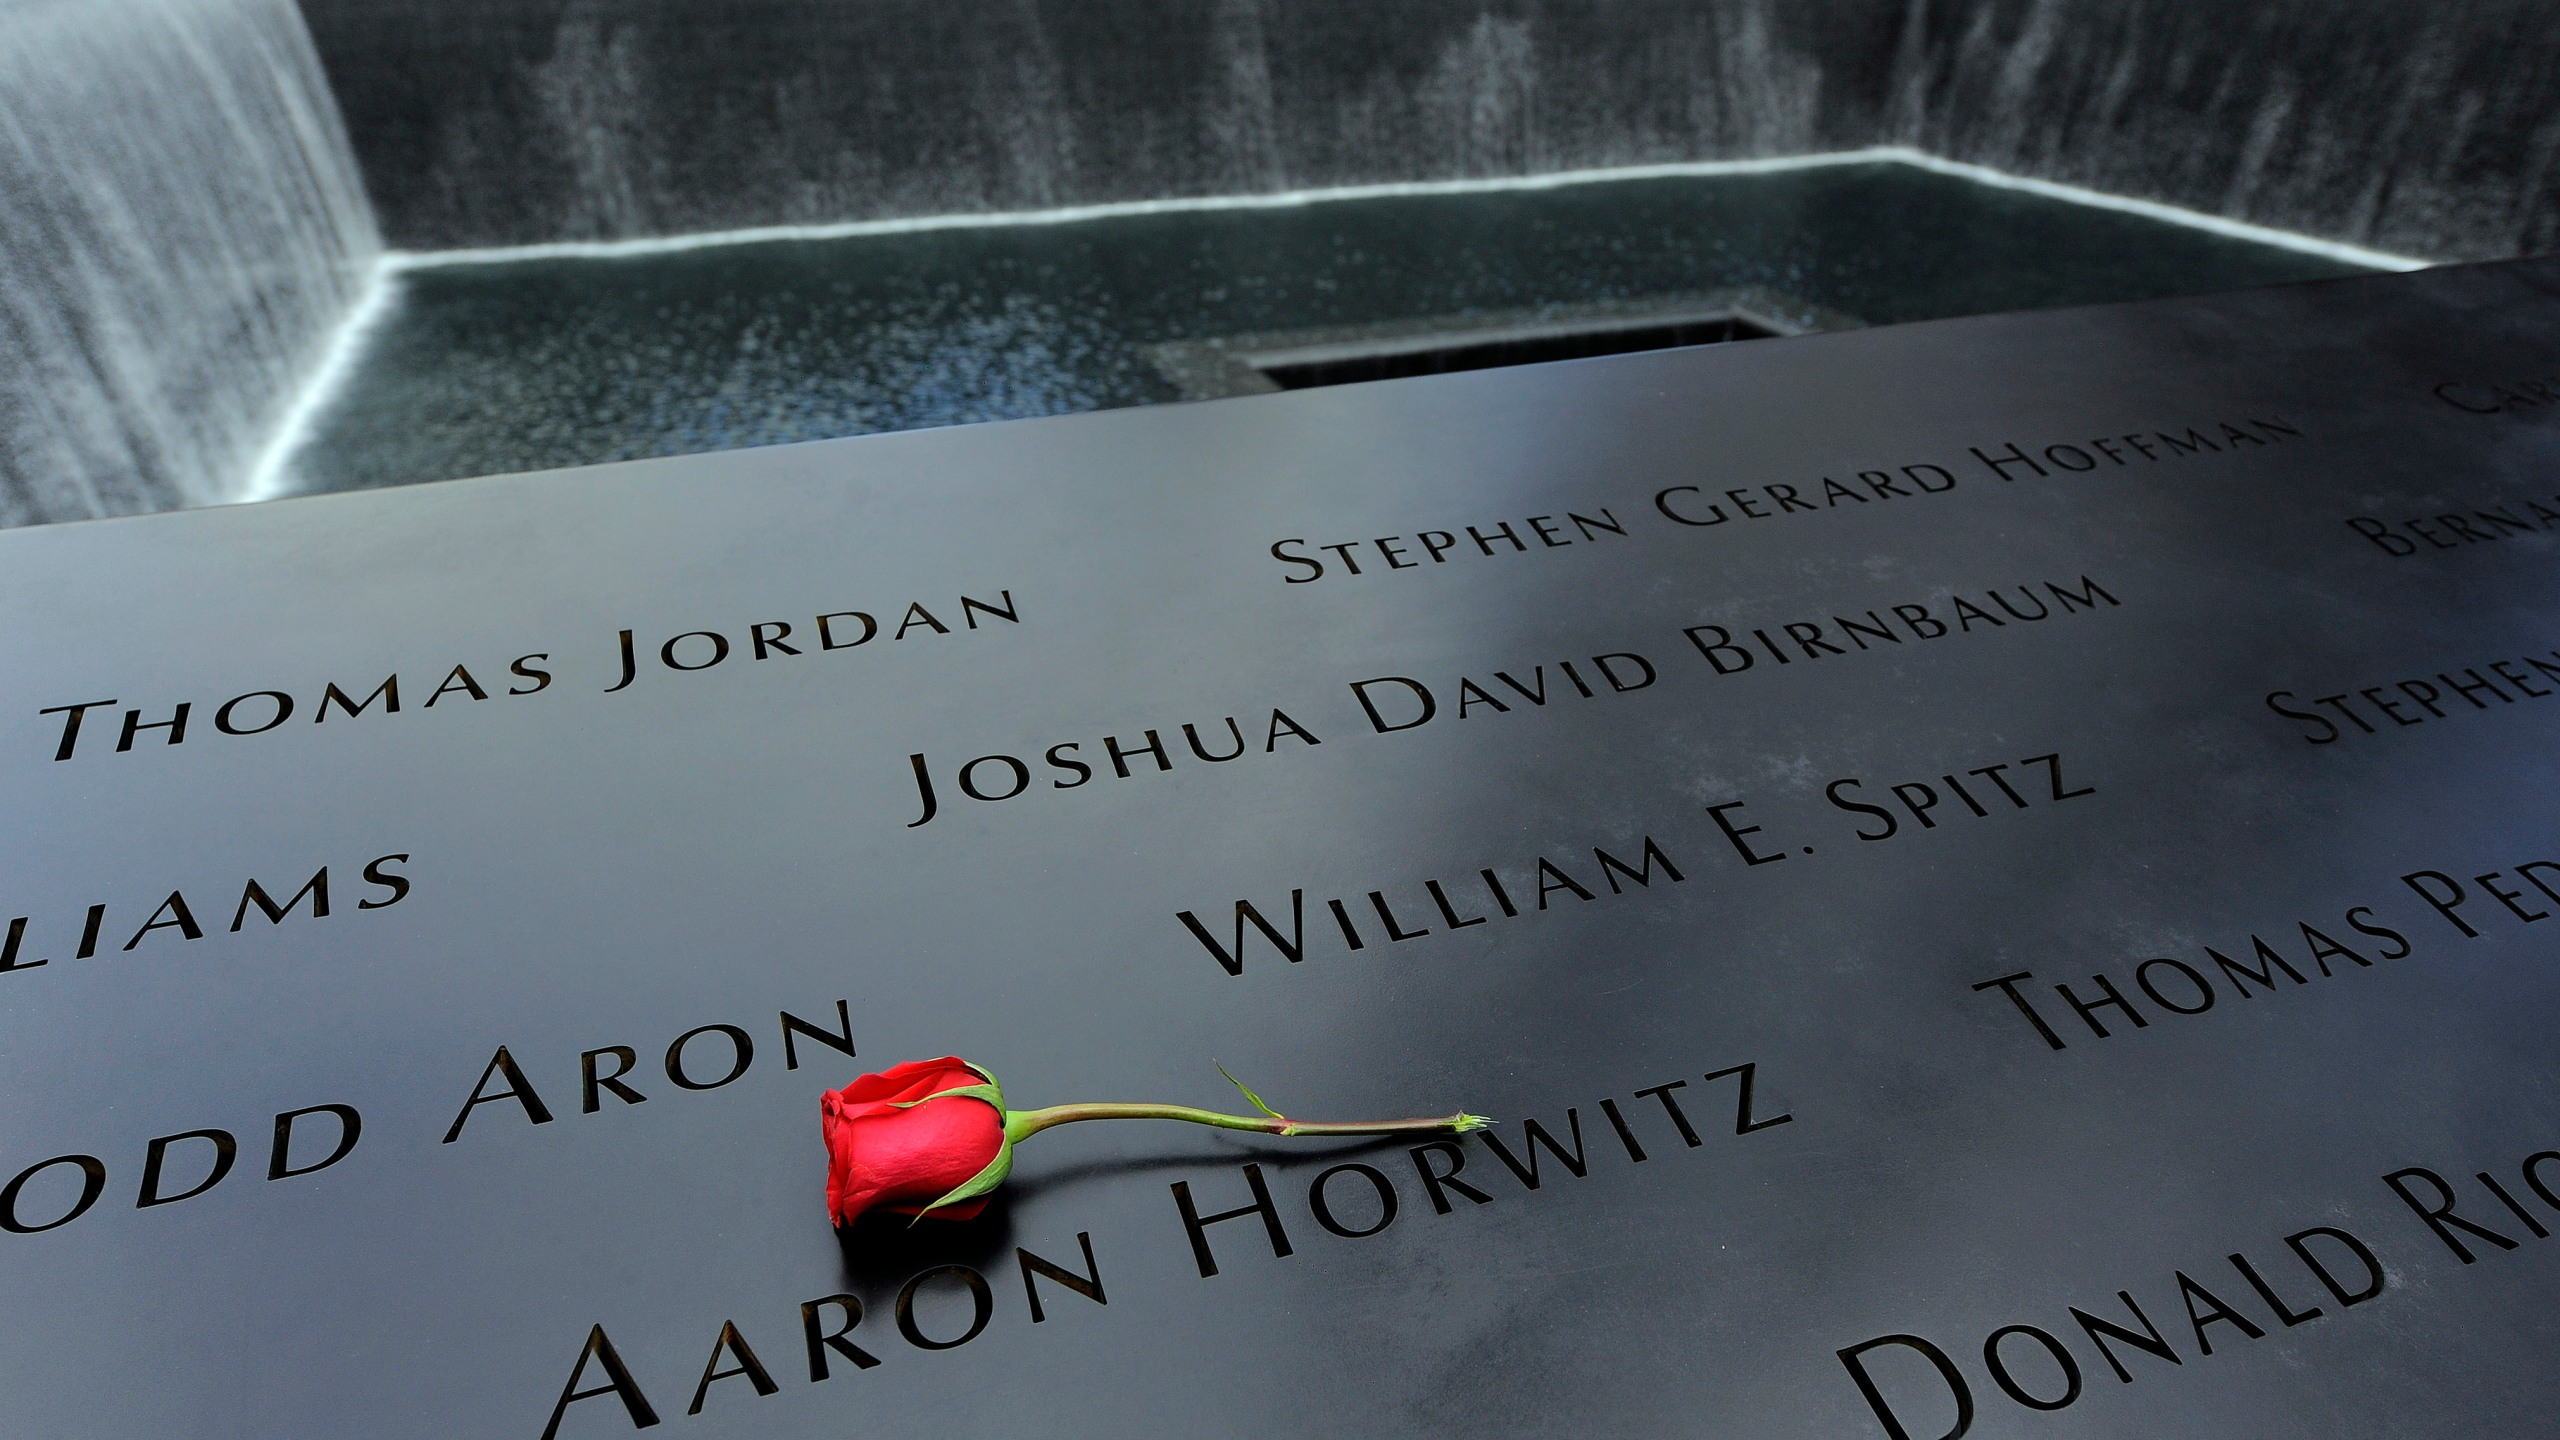 WATCH: Moments from the 9/11 memorialceremony